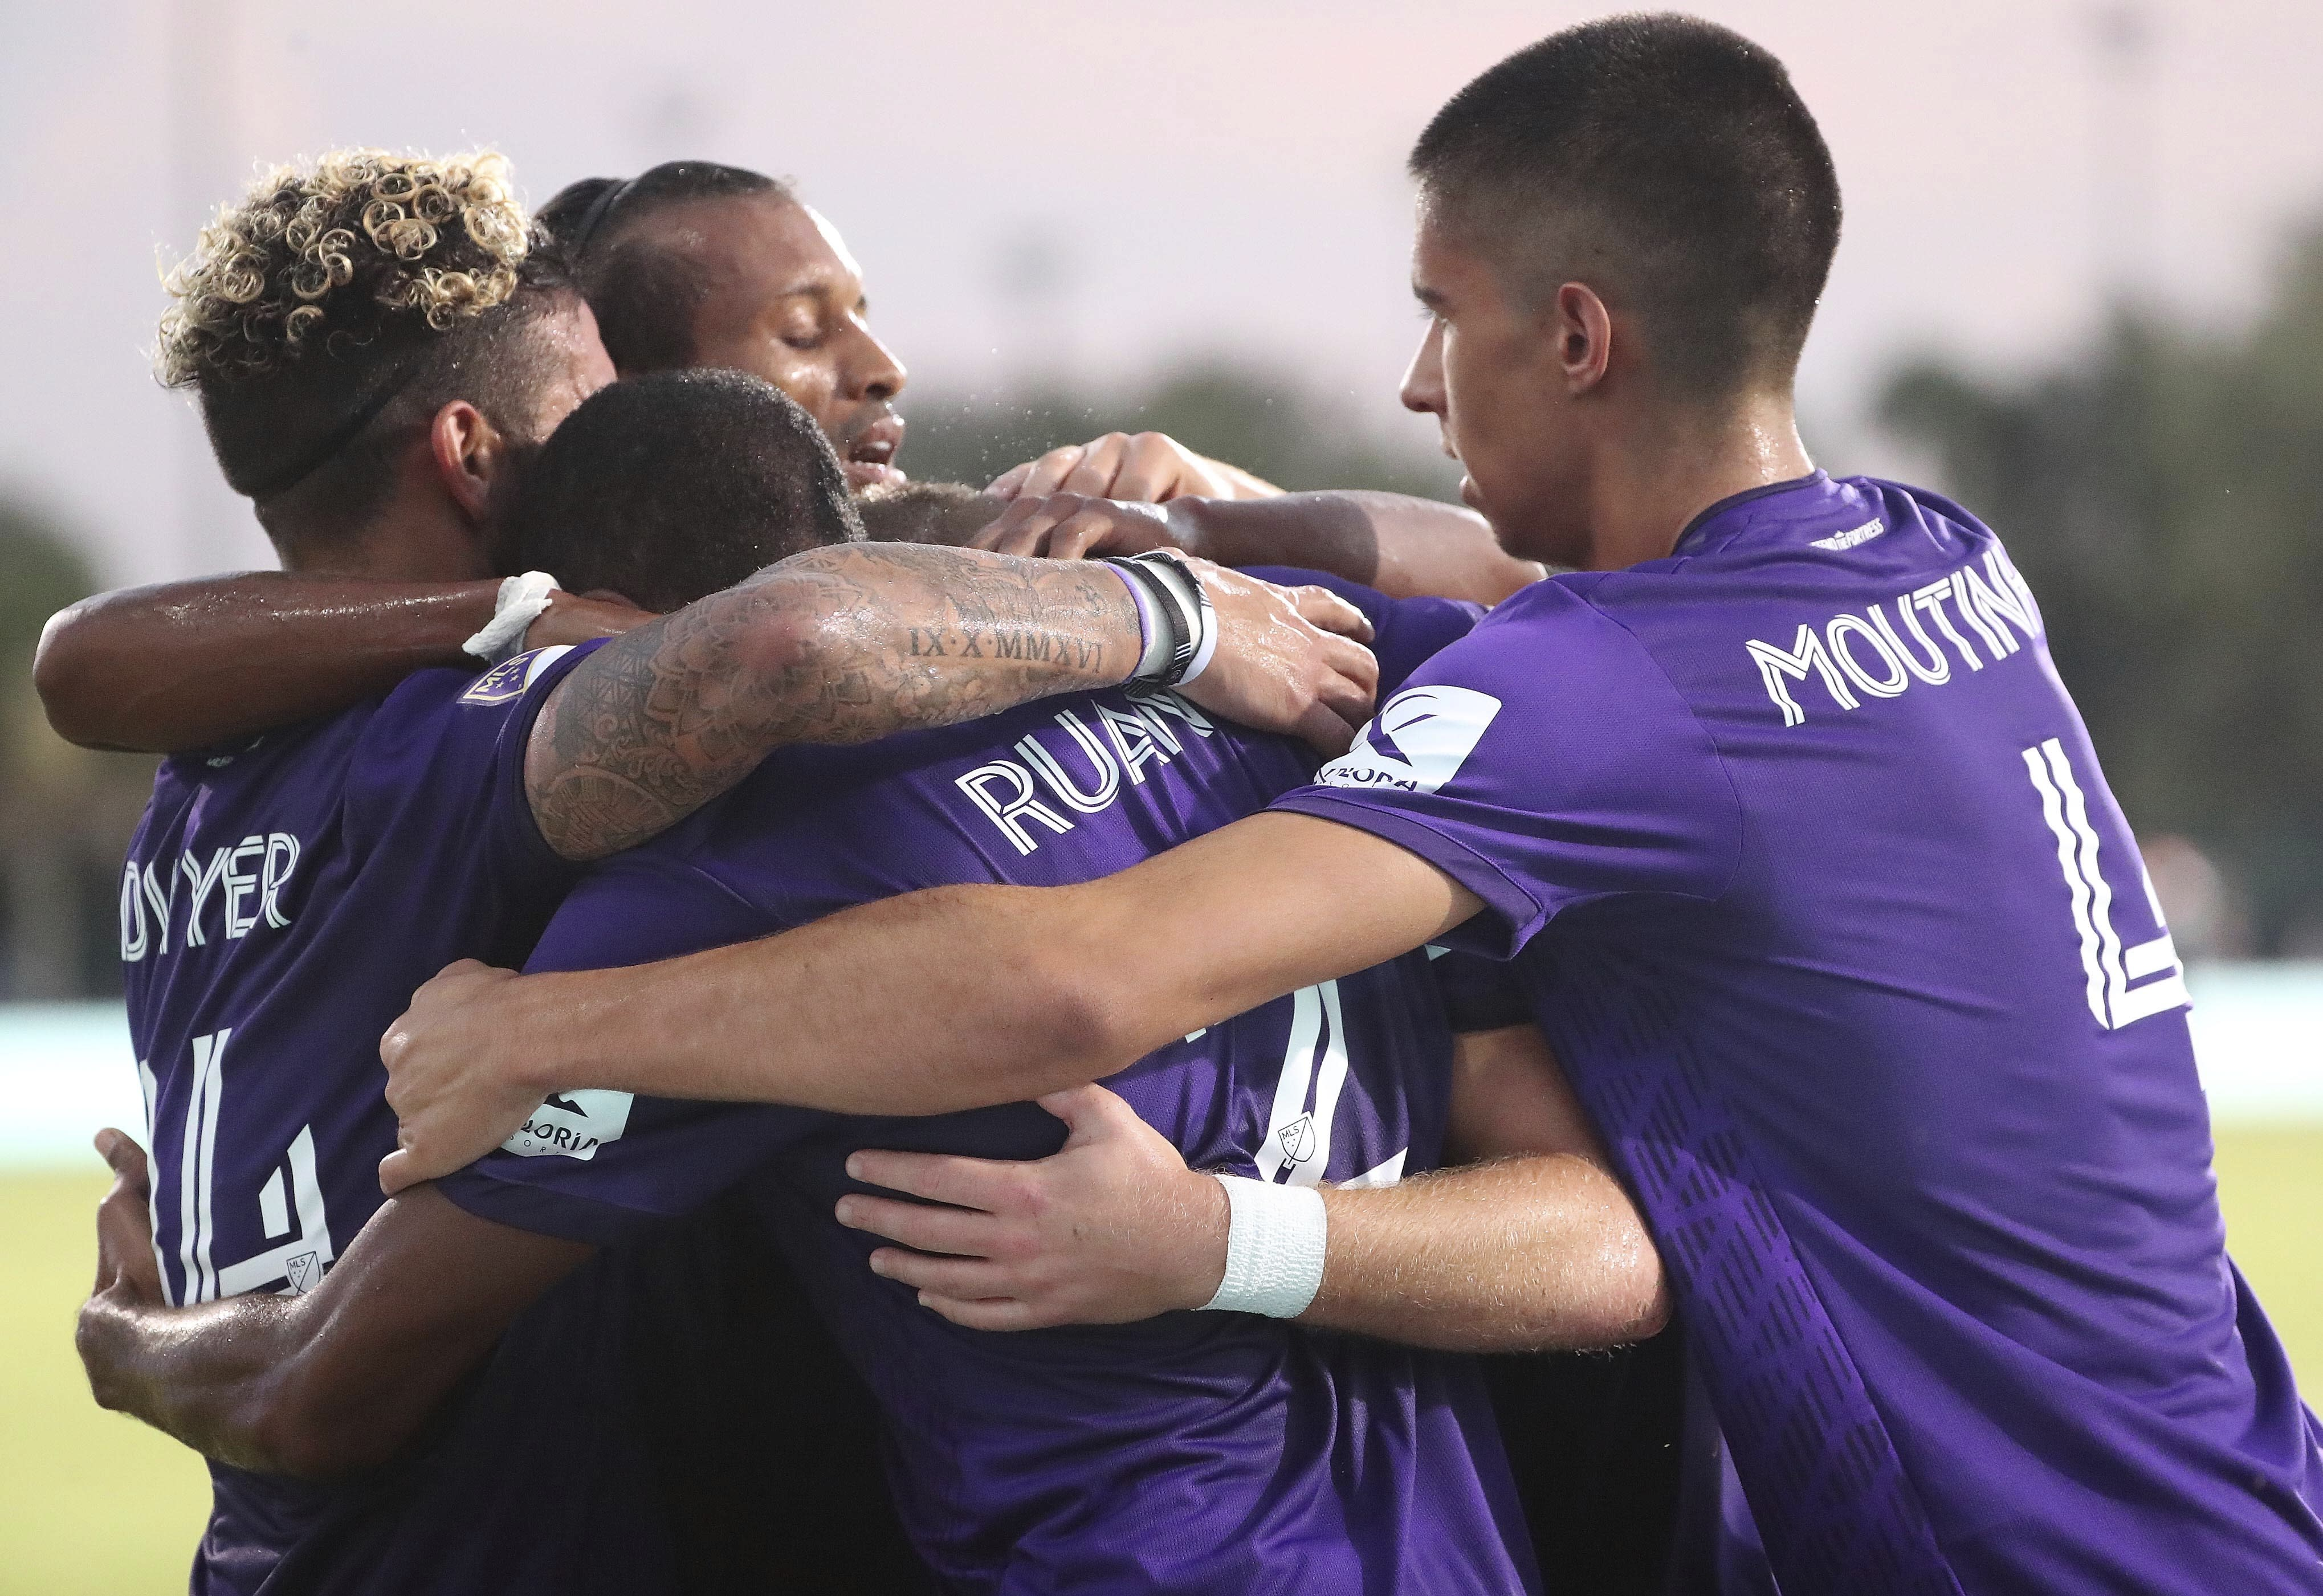 Orlando players celebrate after Chris Mueller, hidden at center, scored a goal against New York City FC during the MLS is Back tournament soccer match, Tuesday, July 14, 2020, in Lake Buena Vista, Fla. (Stephen M. Dowell/Orlando Sentinel via AP)